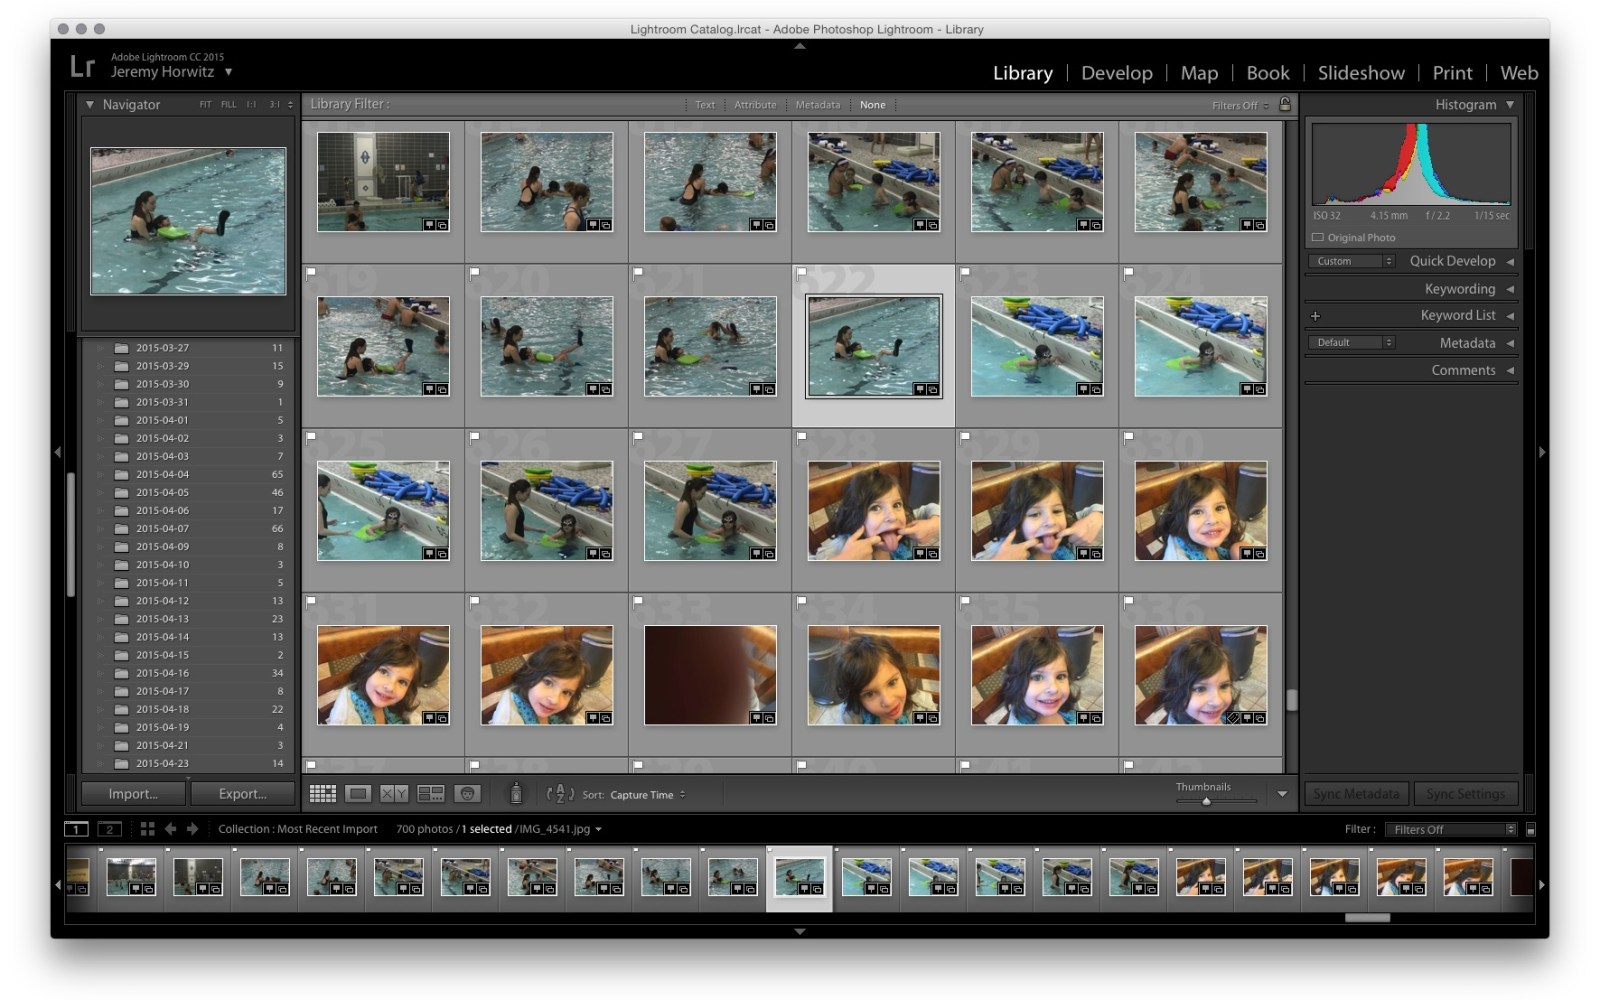 Review: Adobe's Lightroom CC + 6 let photographers transition from Aperture, gain new editing tools